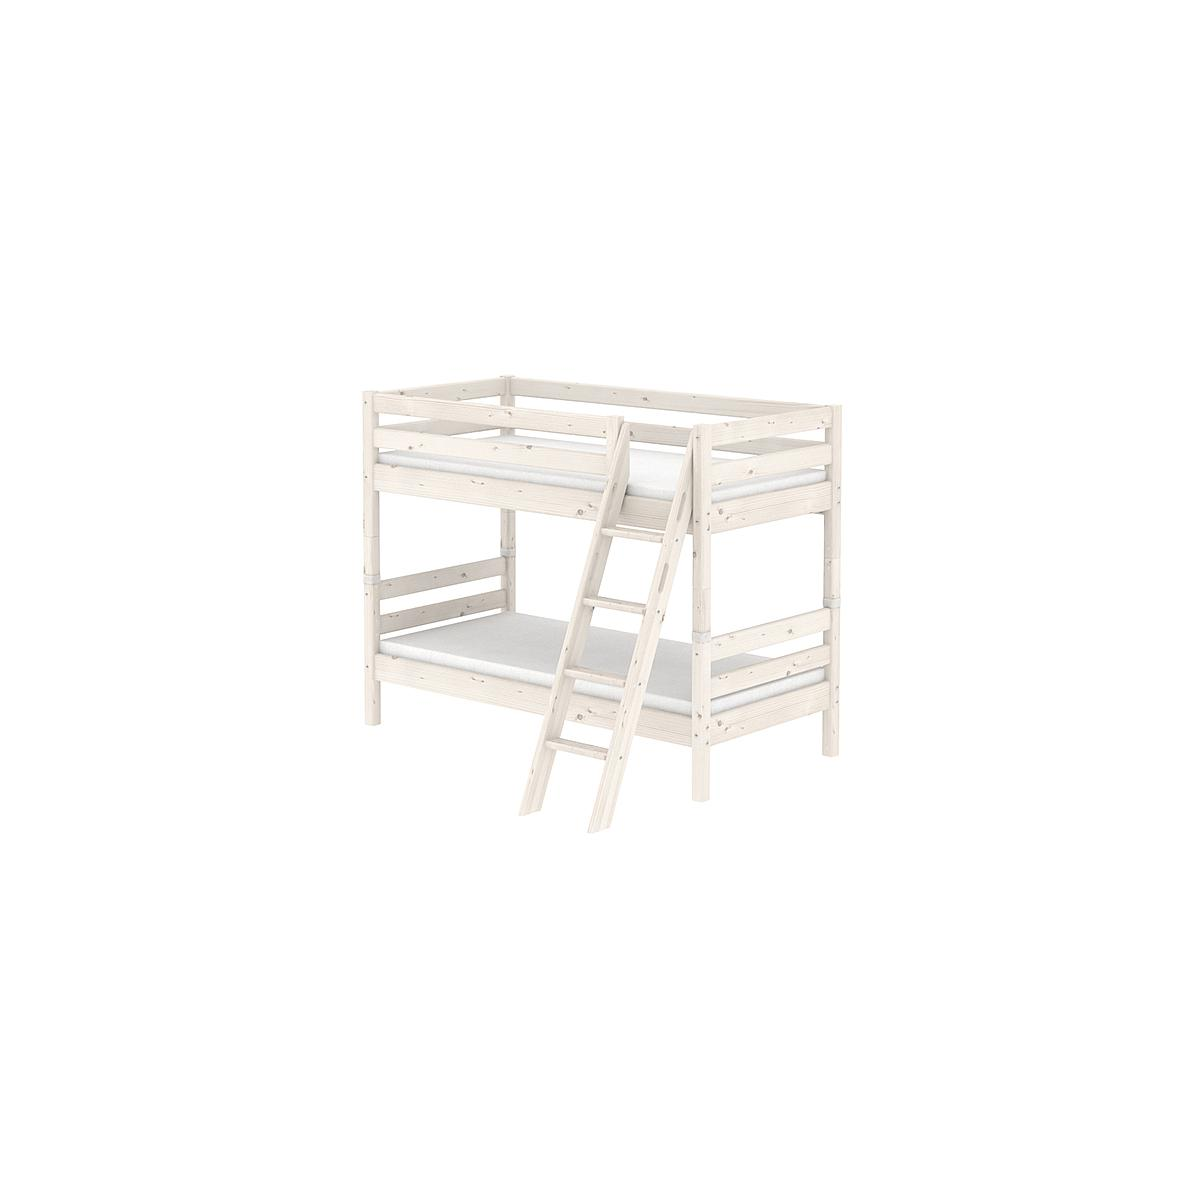 Litera 90x200 CLASSIC Flexa escalera inclinada blanco cal